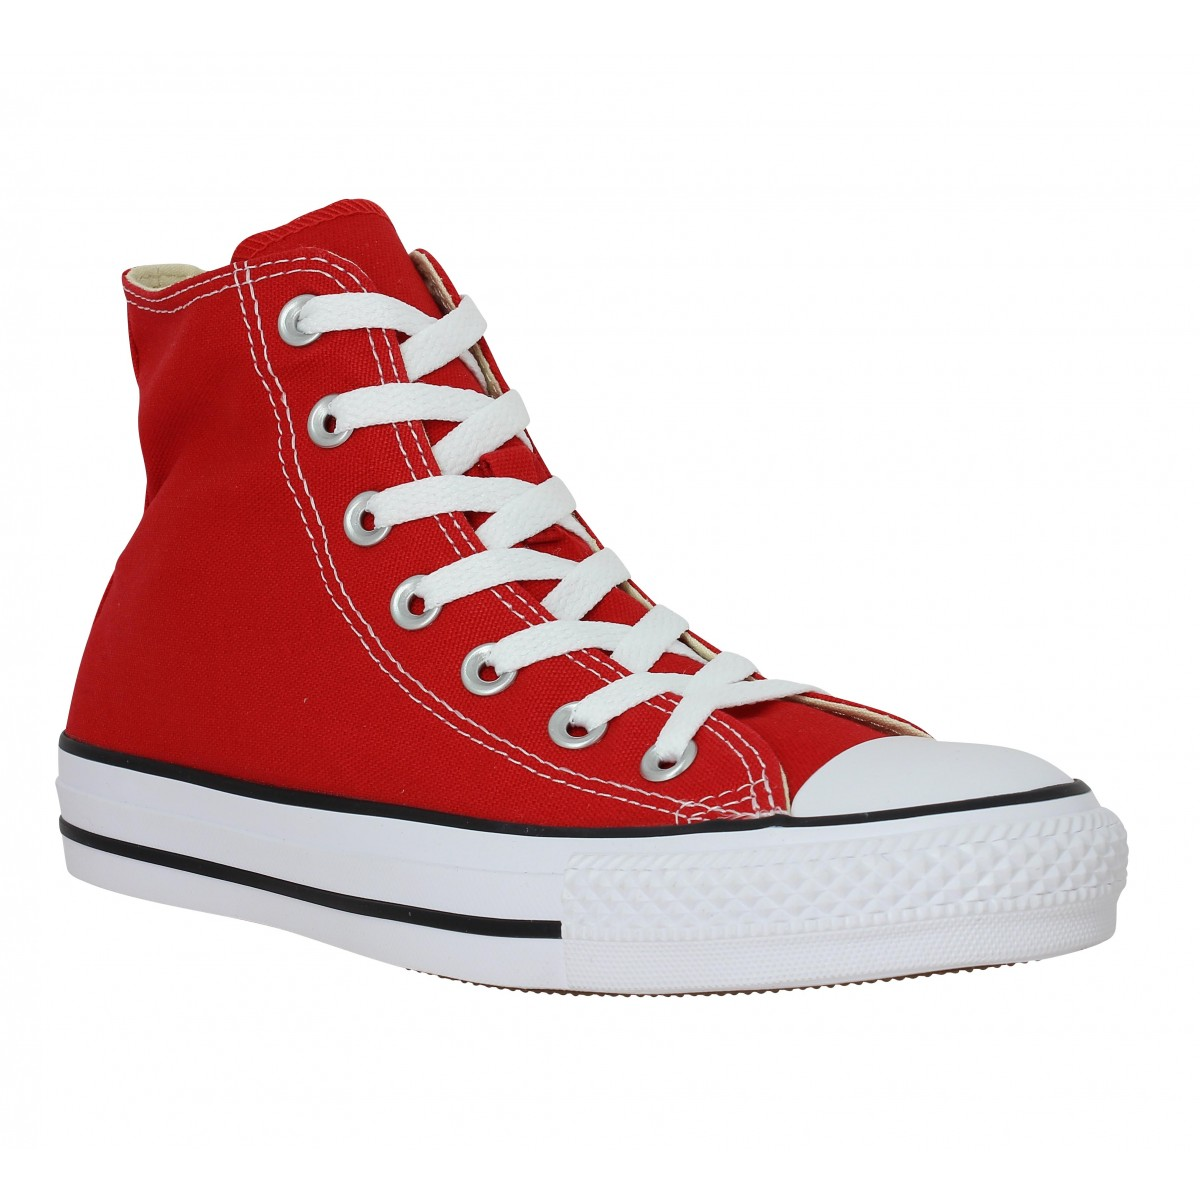 CONVERSE Chuck Taylor All Star Hi toile Femme Rouge